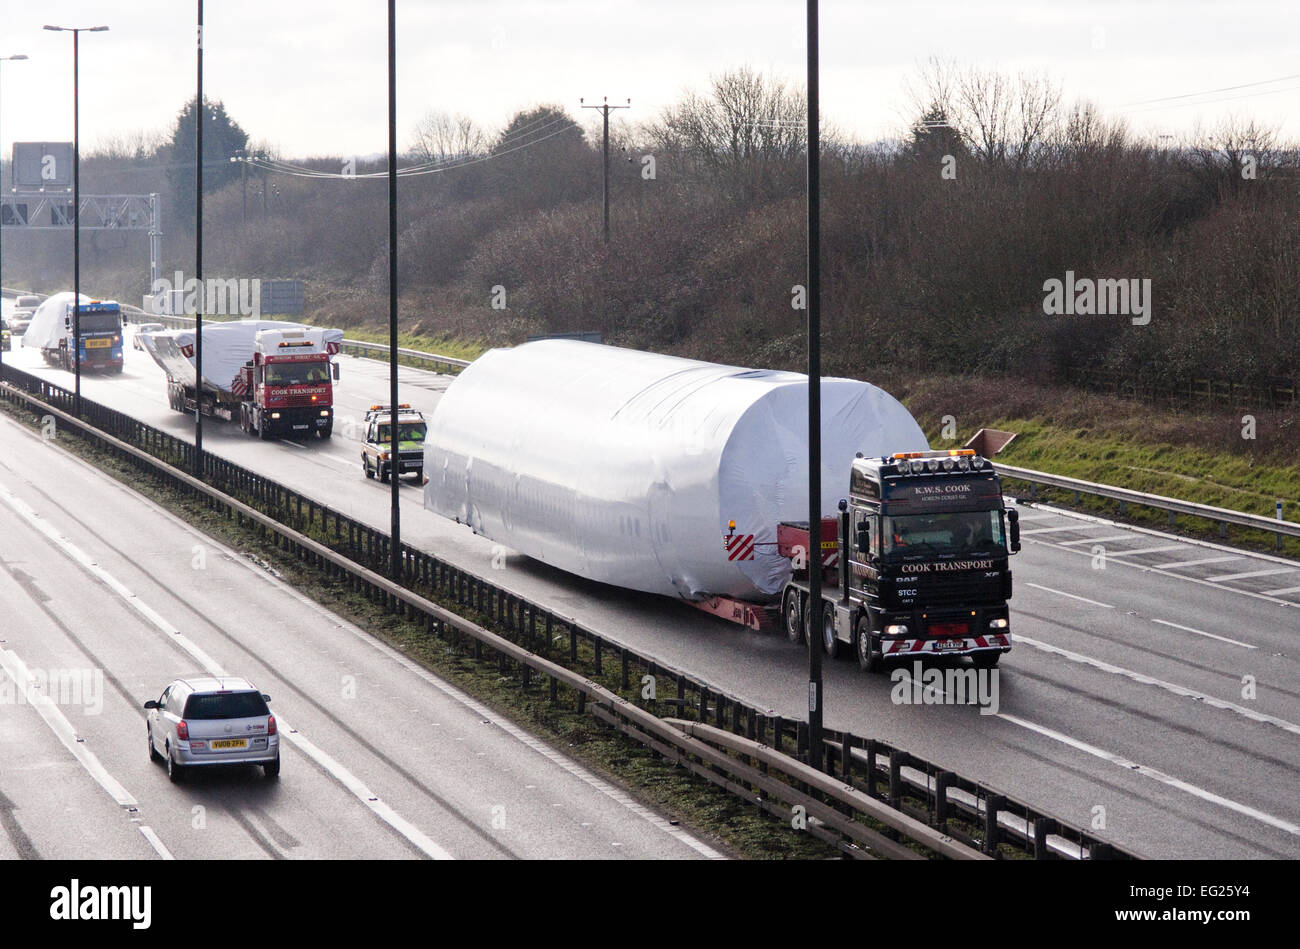 Bristol, UK. 14th Feb, 2015. A Boeing 747 fuselage being transported on the M4 near junction 21. The aircraft fuselage - Stock Image